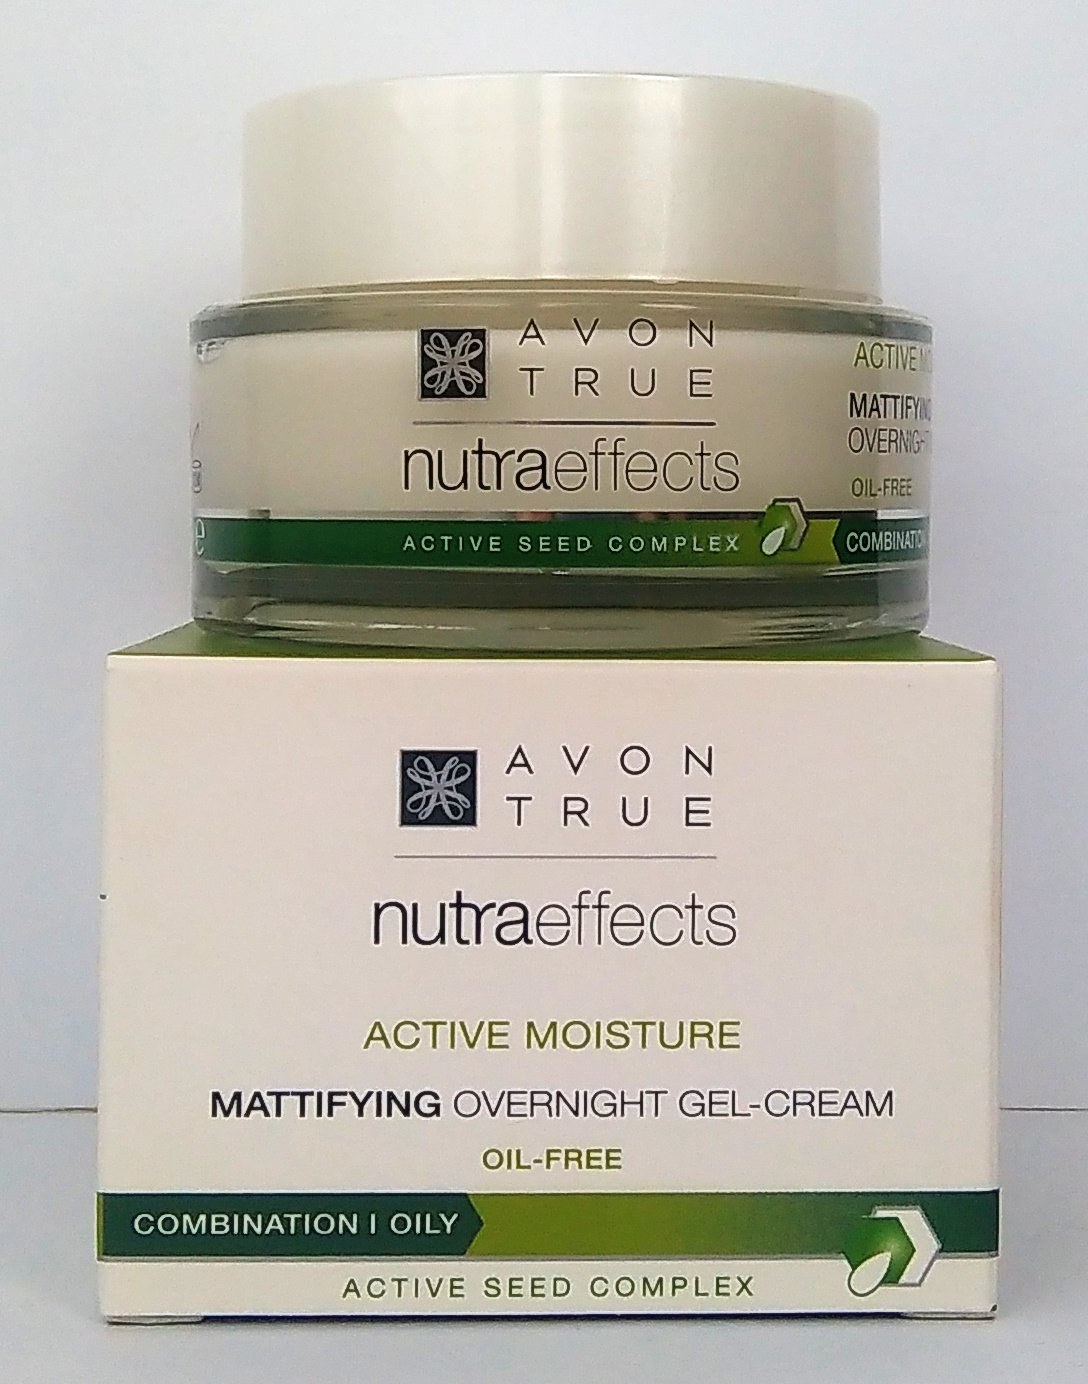 AVON True Nutraeffects Mattifying Gel-Crema De Noche Matificante Sin Aceite 50ml